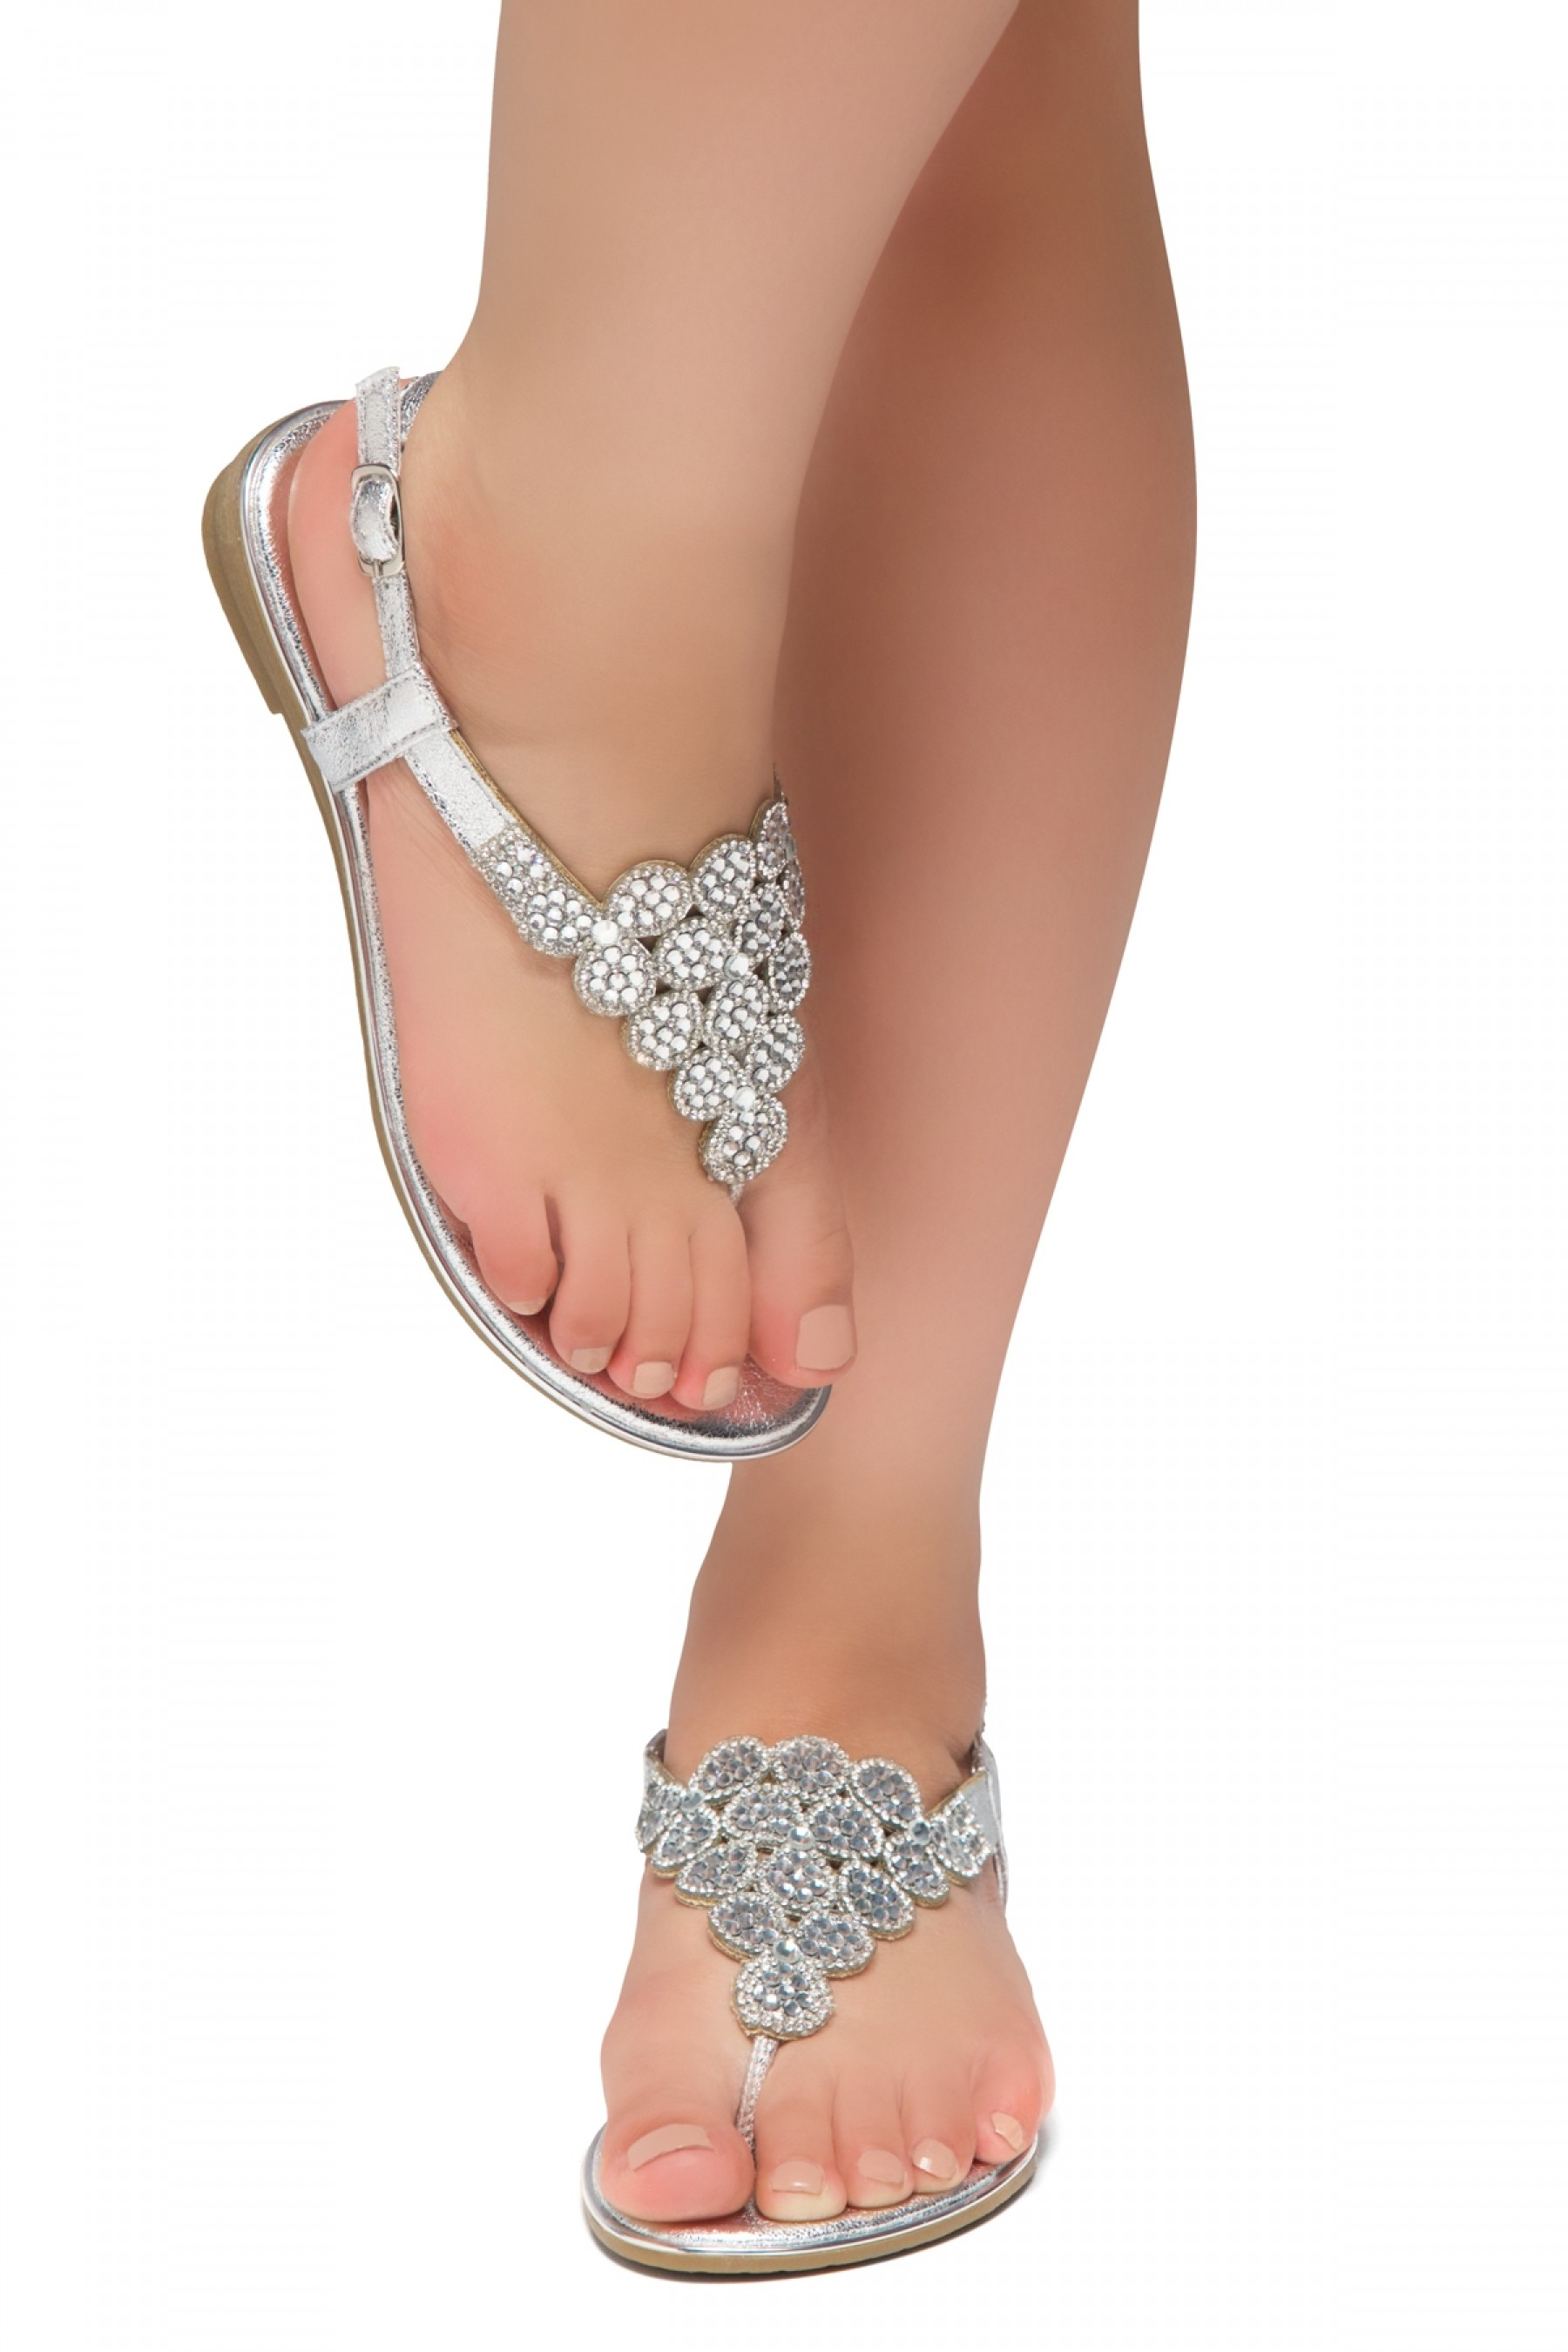 HerStyle Charlee- Thong Sandals with Patterned Jeweled Vamp (Silver)